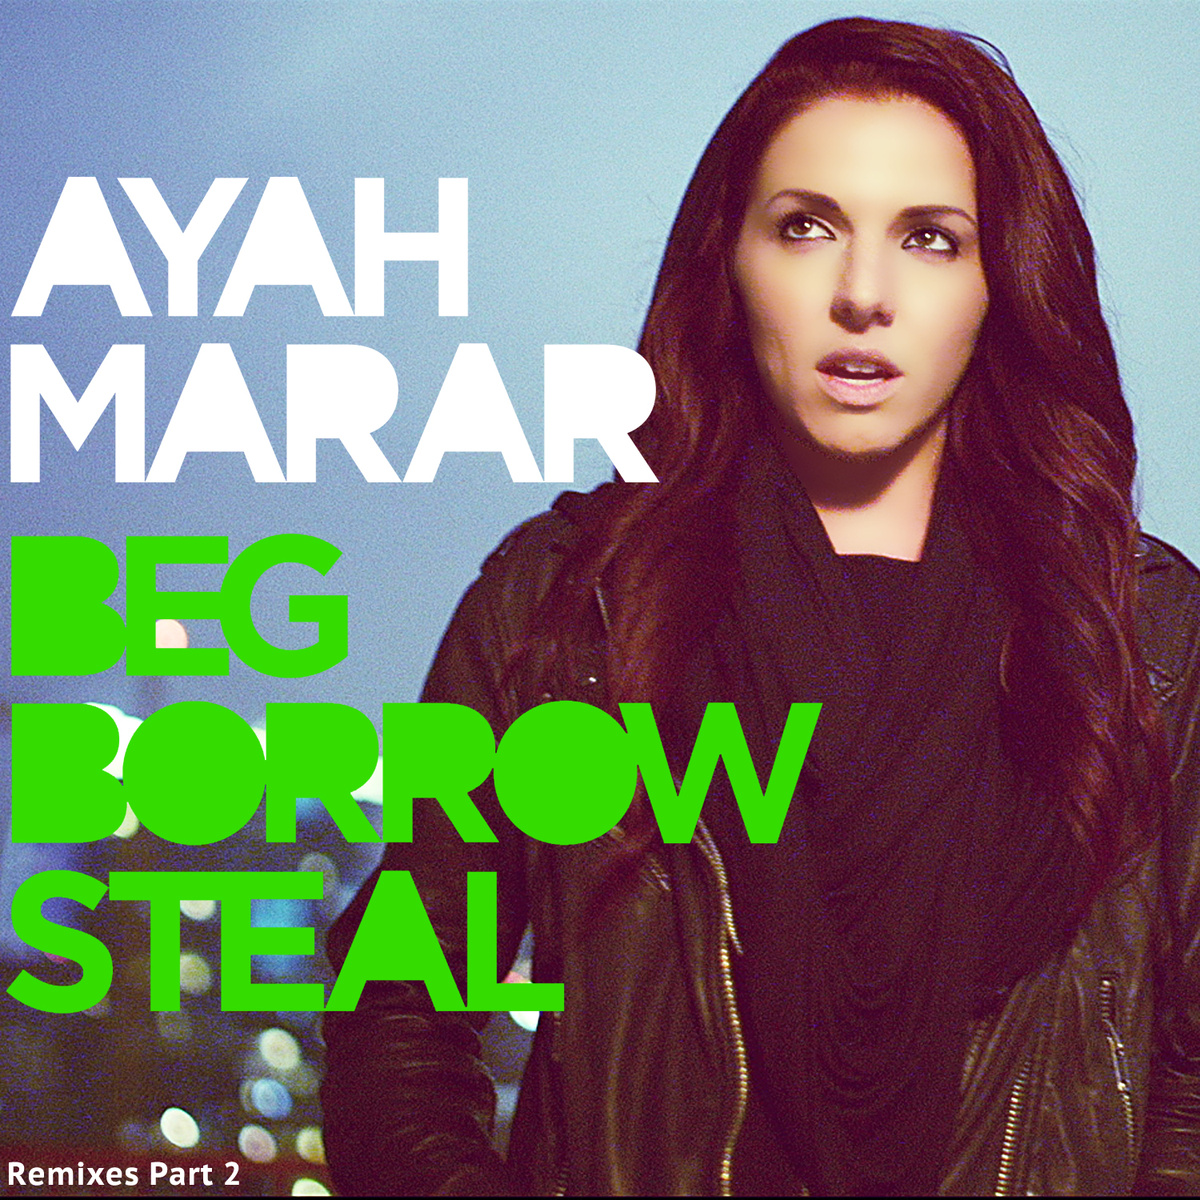 Ayah Marar – Beg Borrow Steal (Michael Gray Extended Remix)